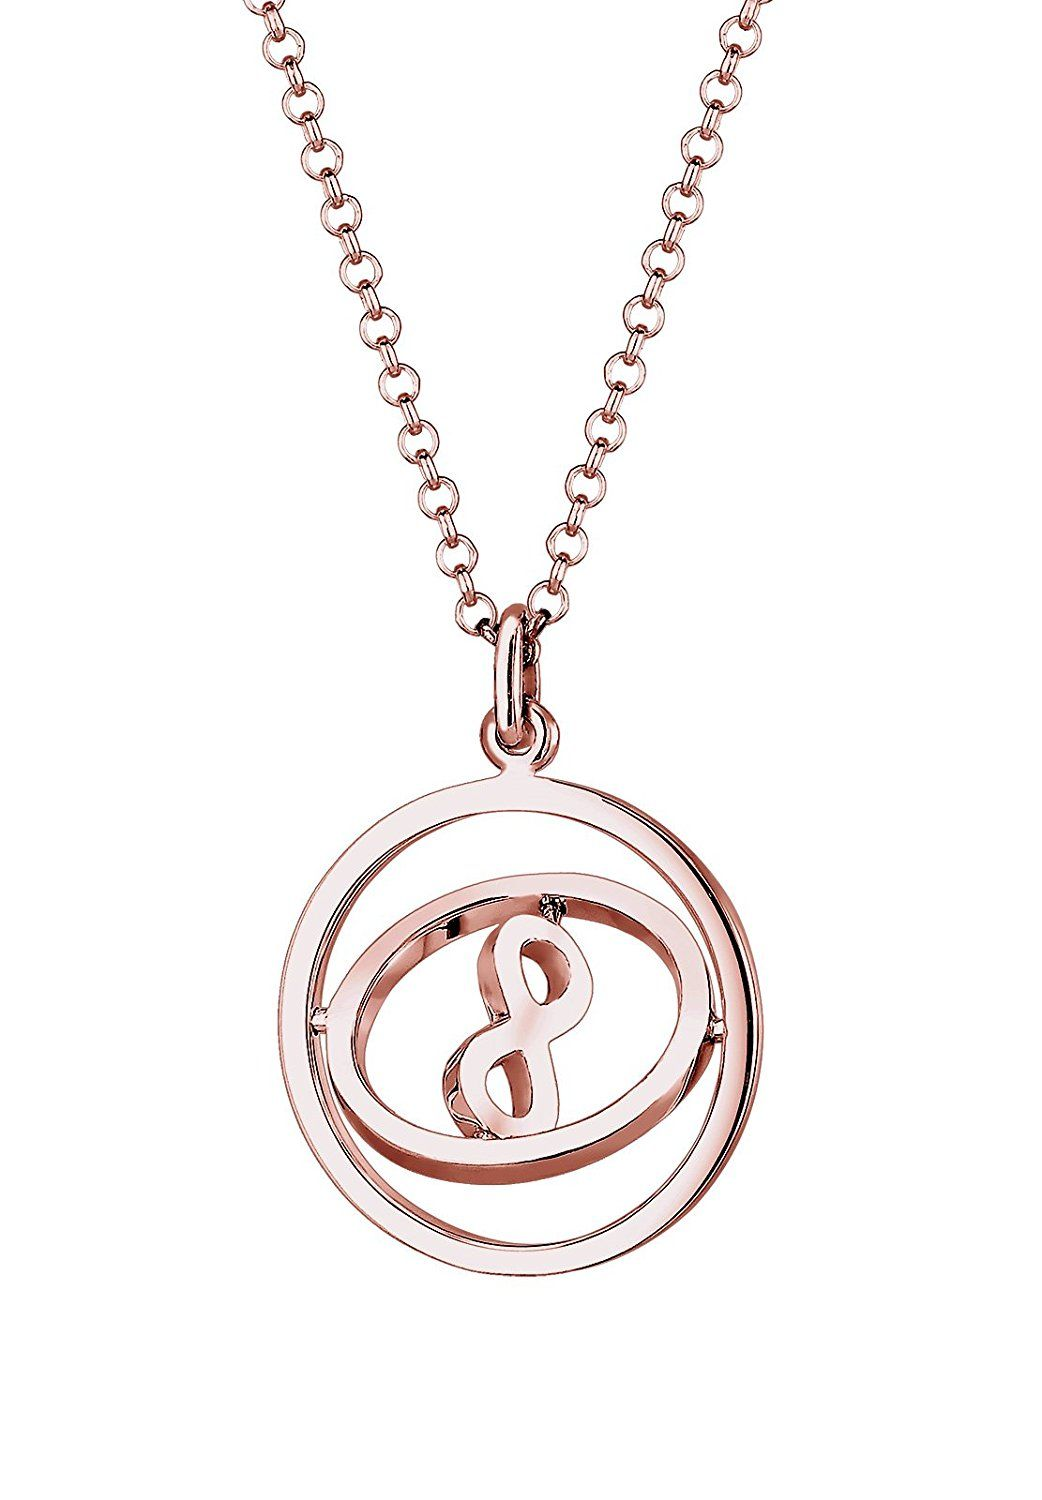 Elli women necklace 925 sterling silver rose gold plated